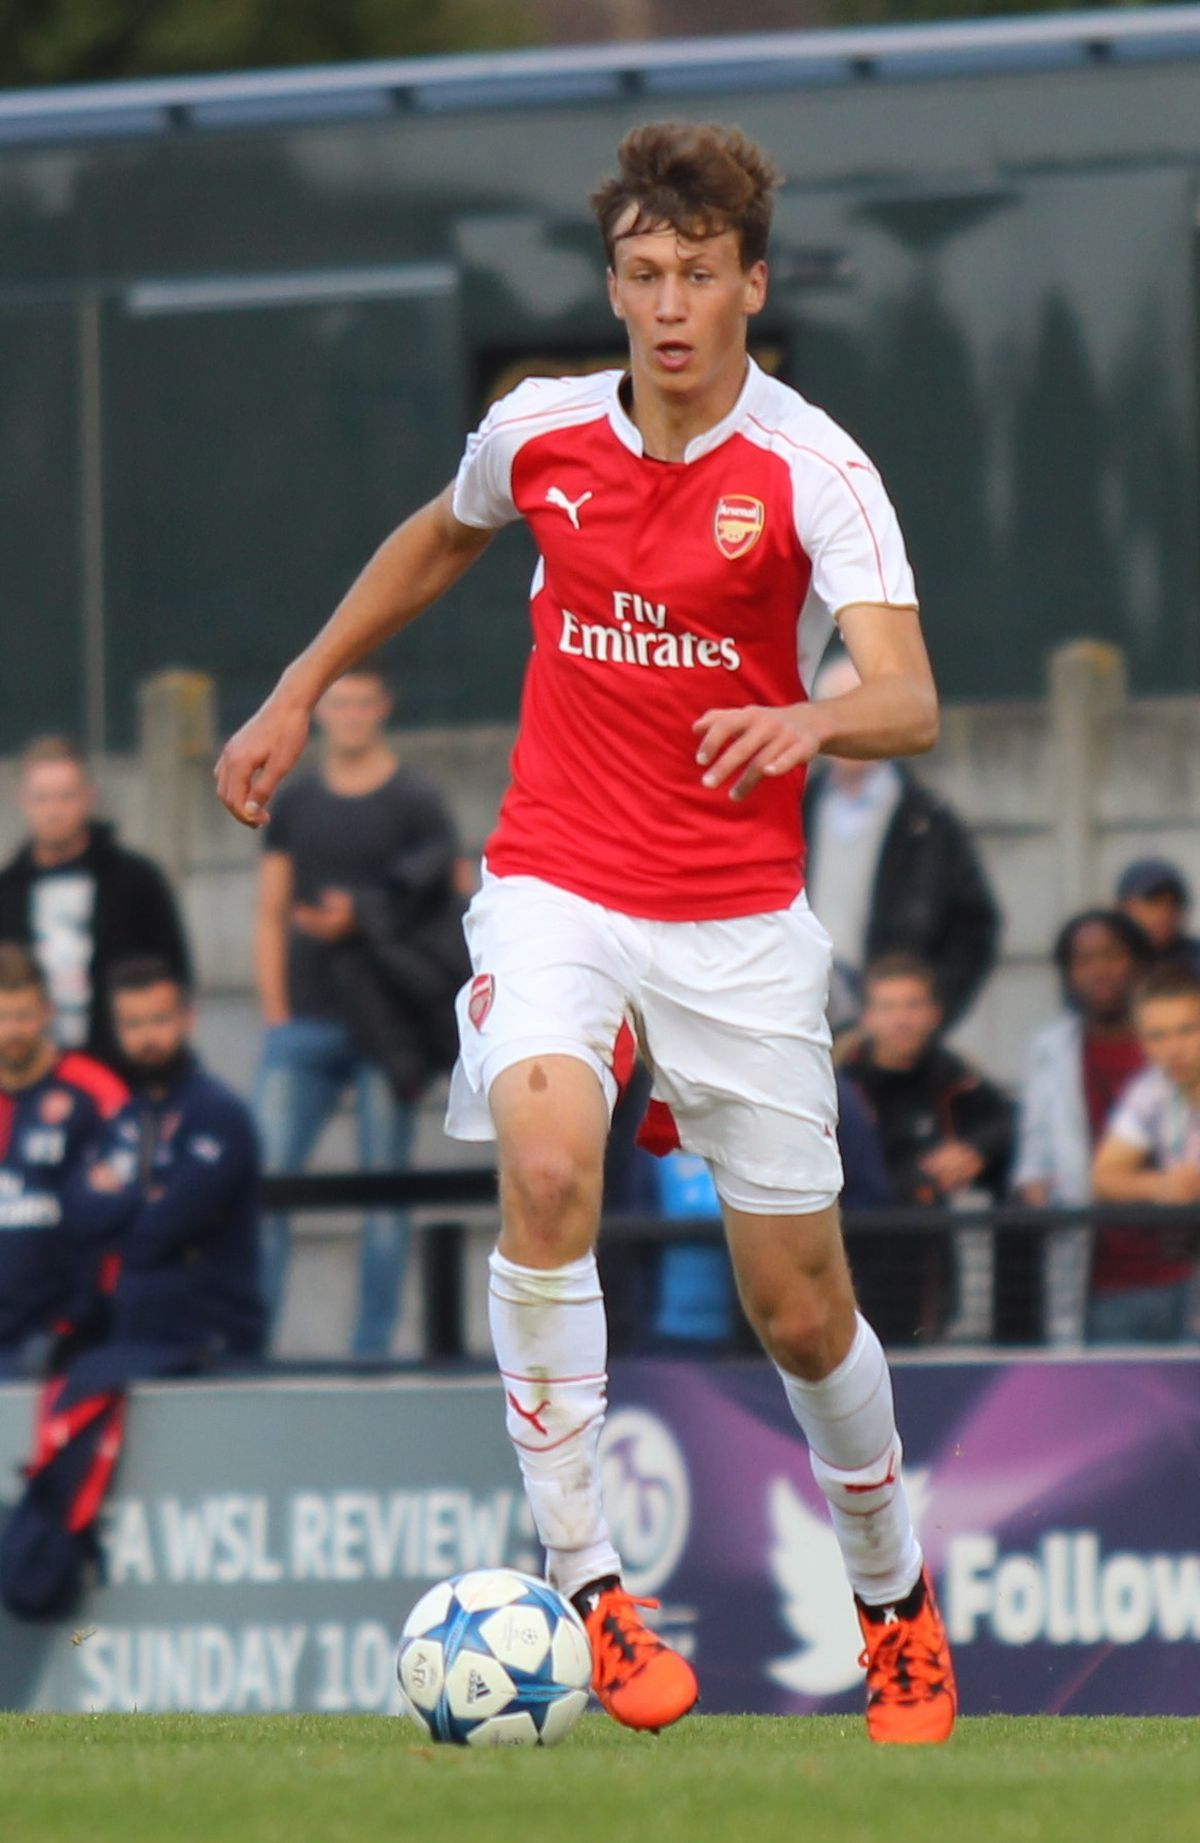 Krystian Bielik is yet to show Walsall fans what he's capable of. (Photo: Joshjdss)